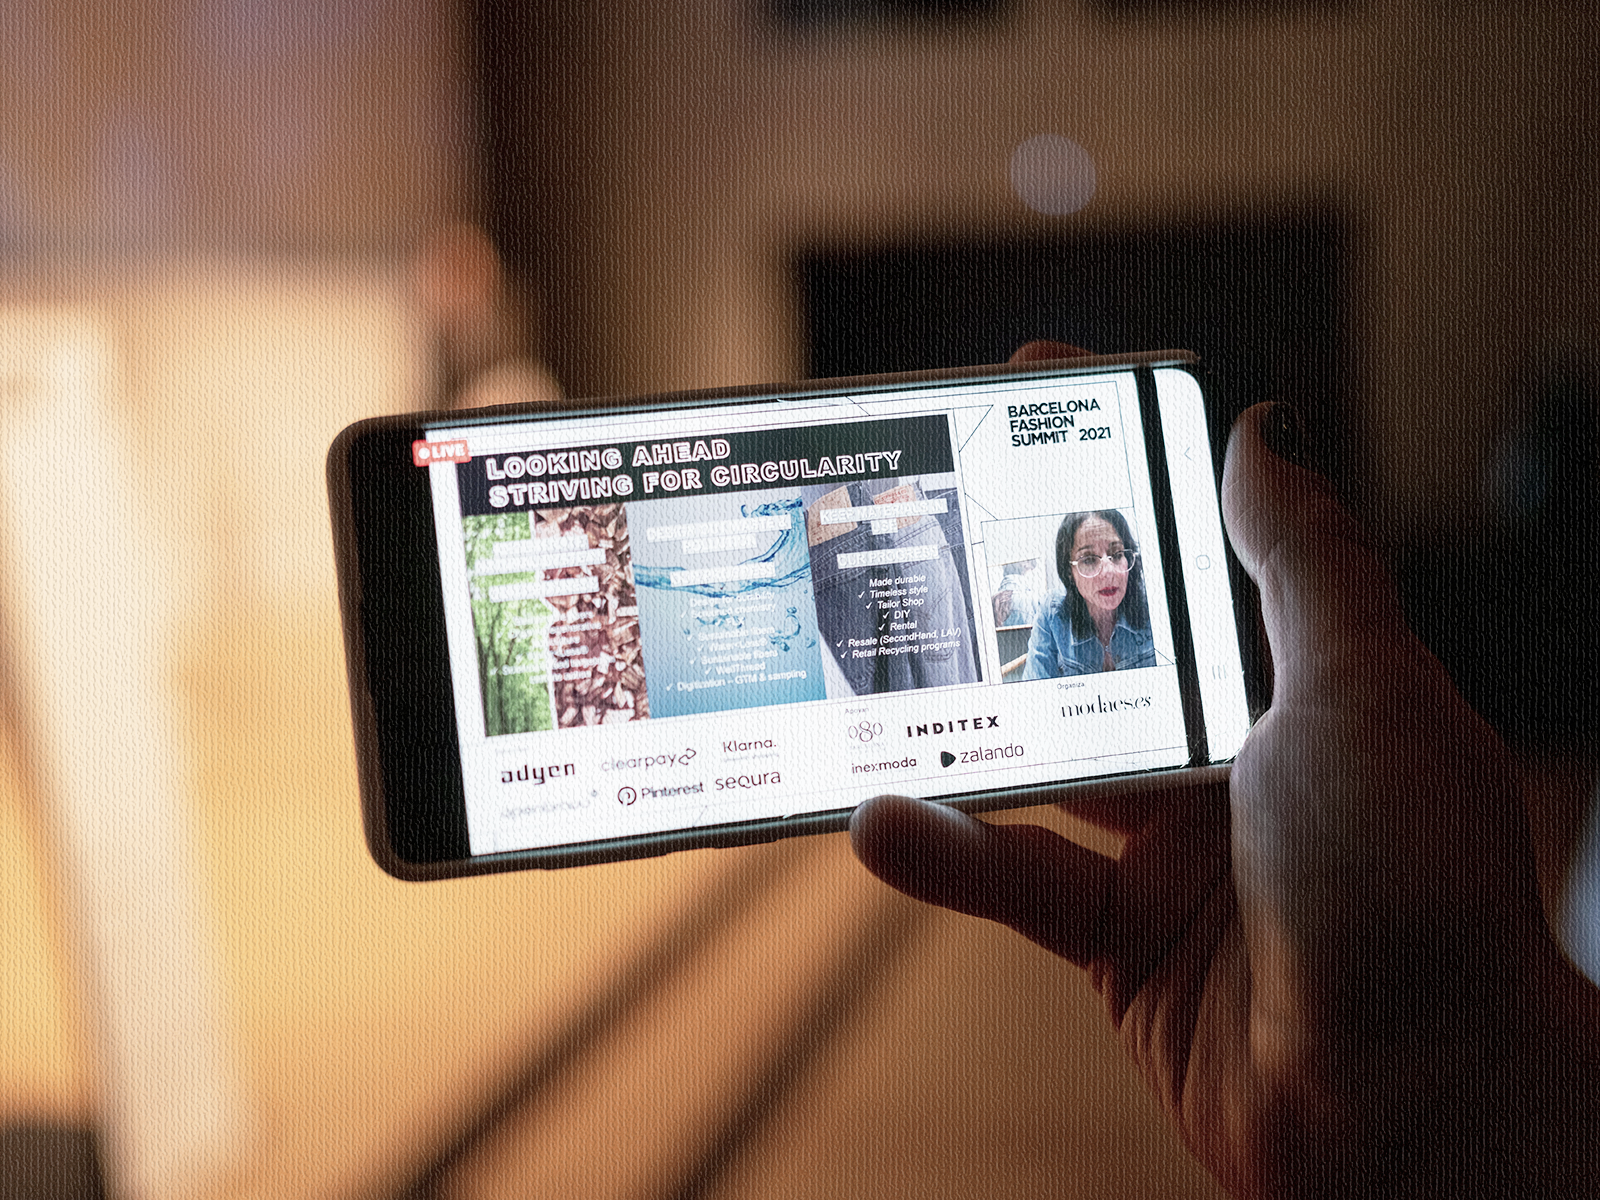 /bfs21/slideshows/5.png